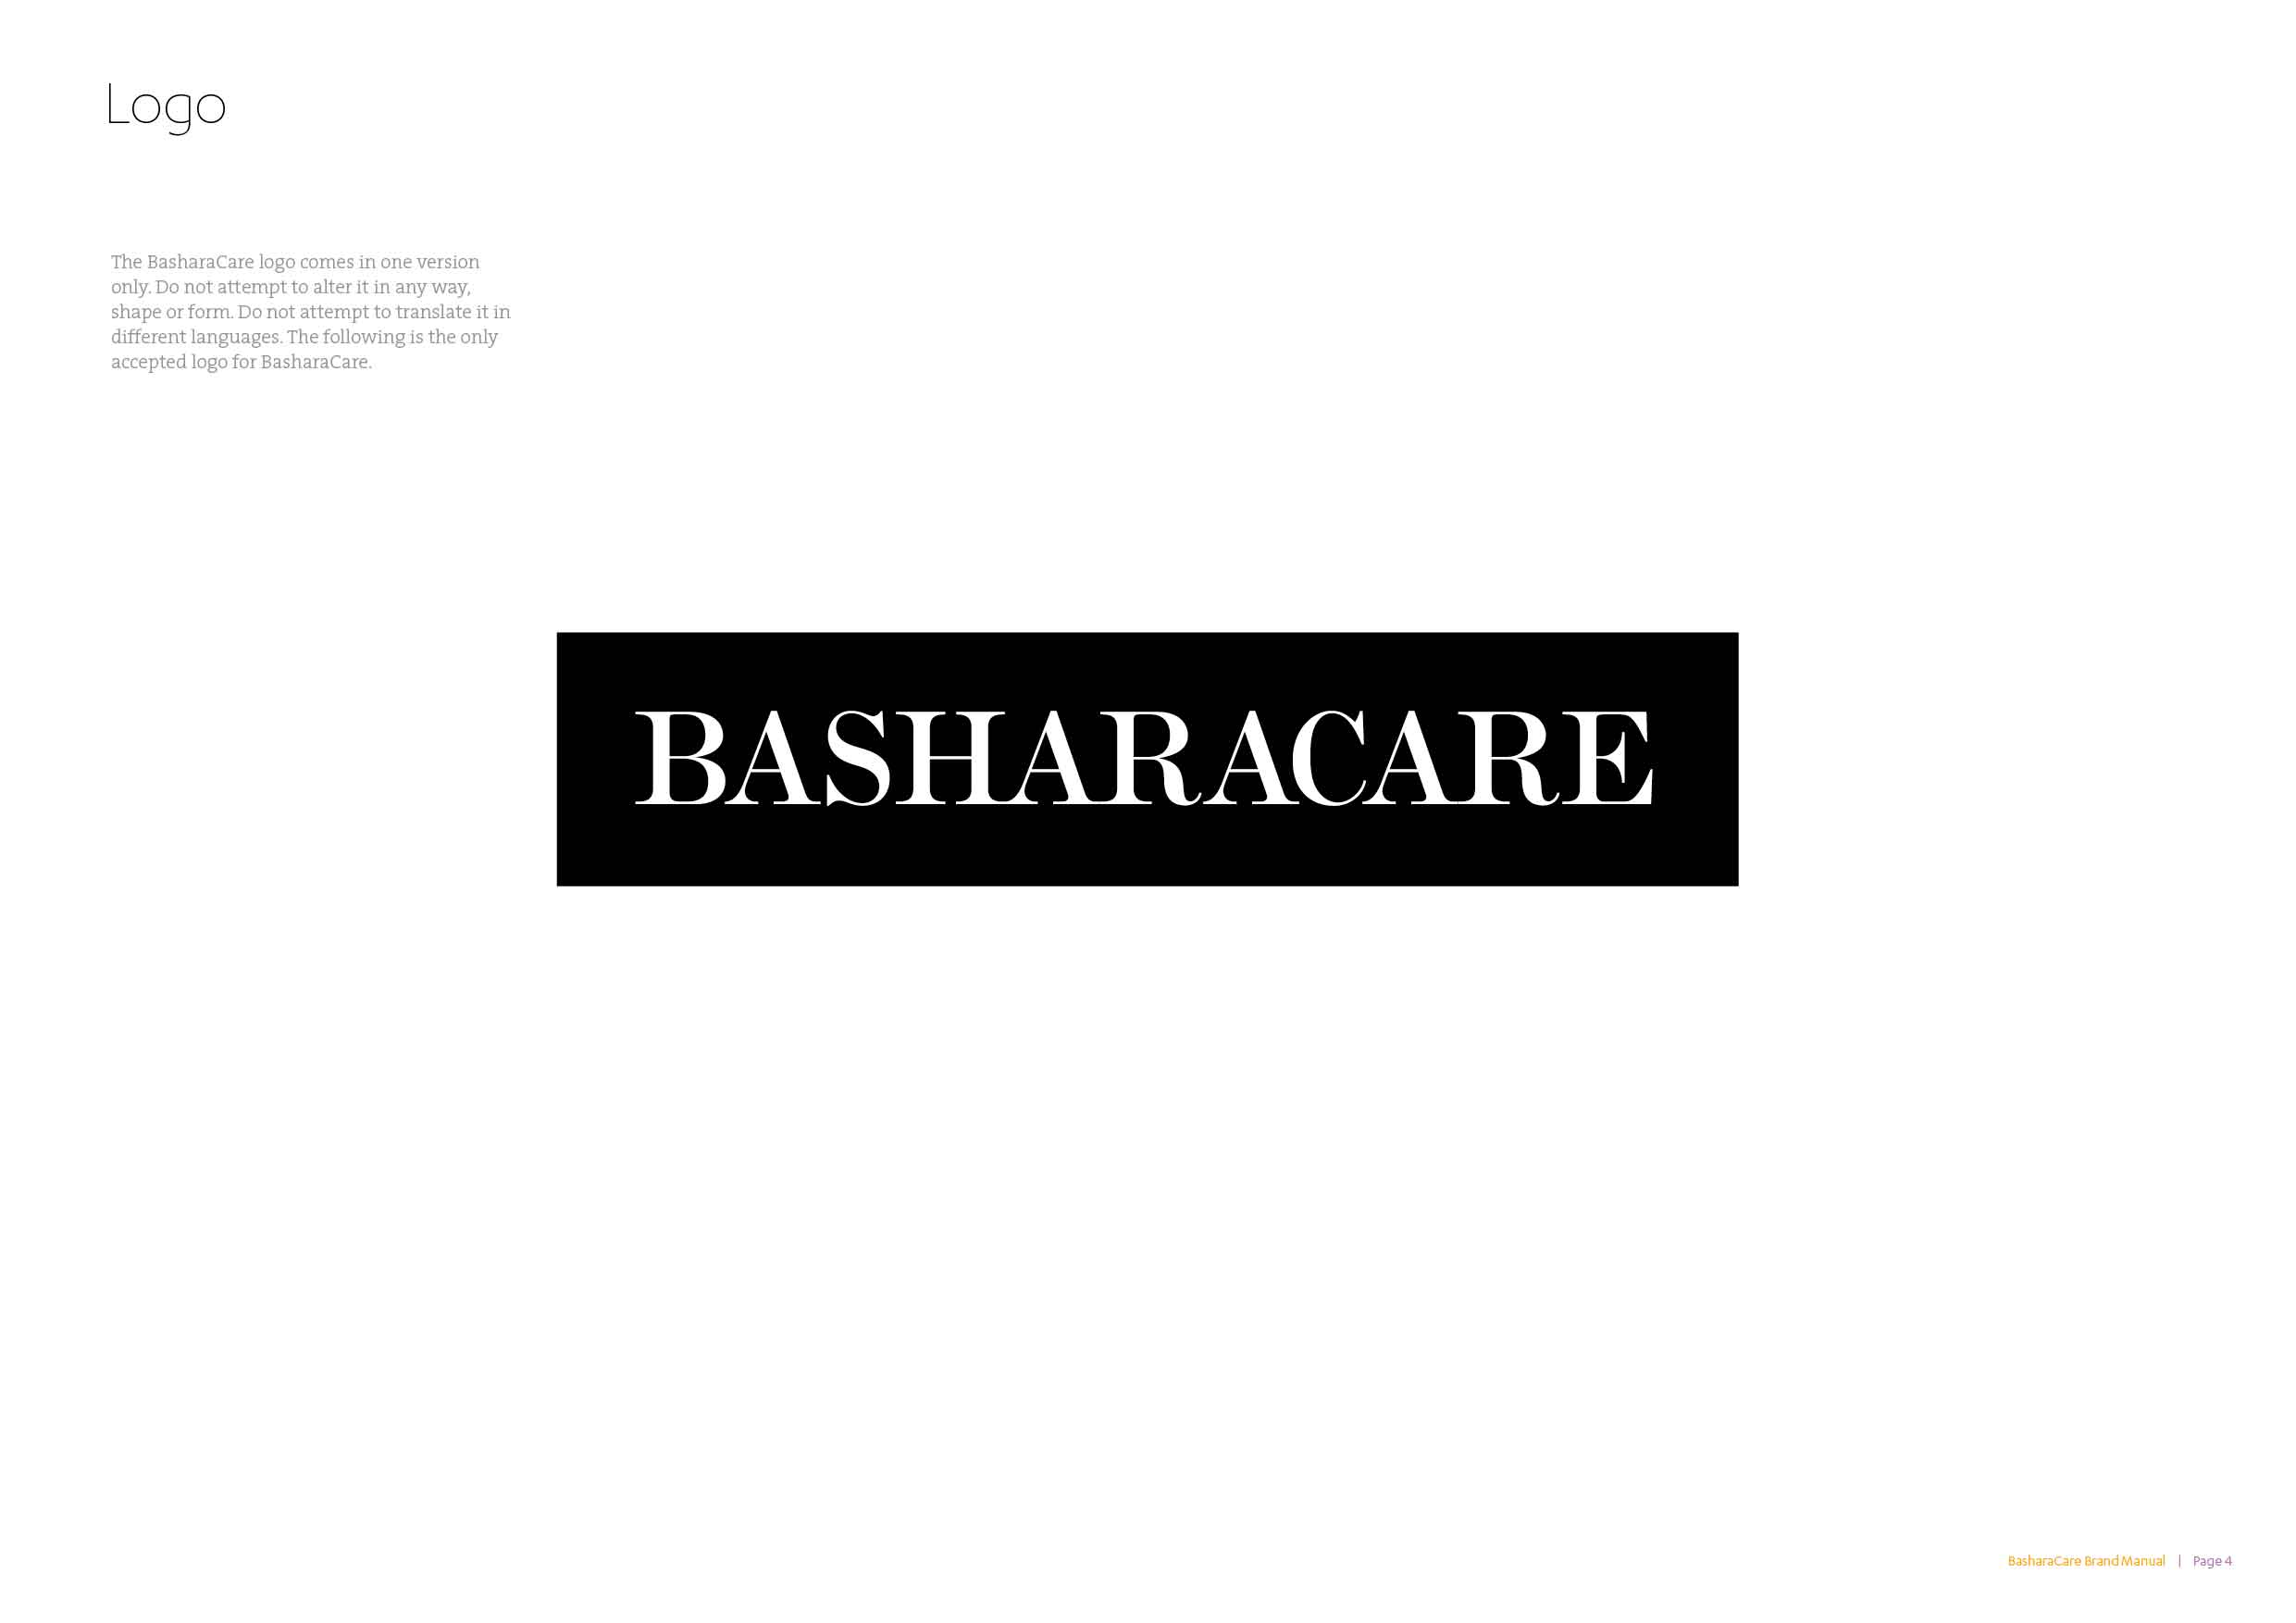 basharacare-brand-manual4b